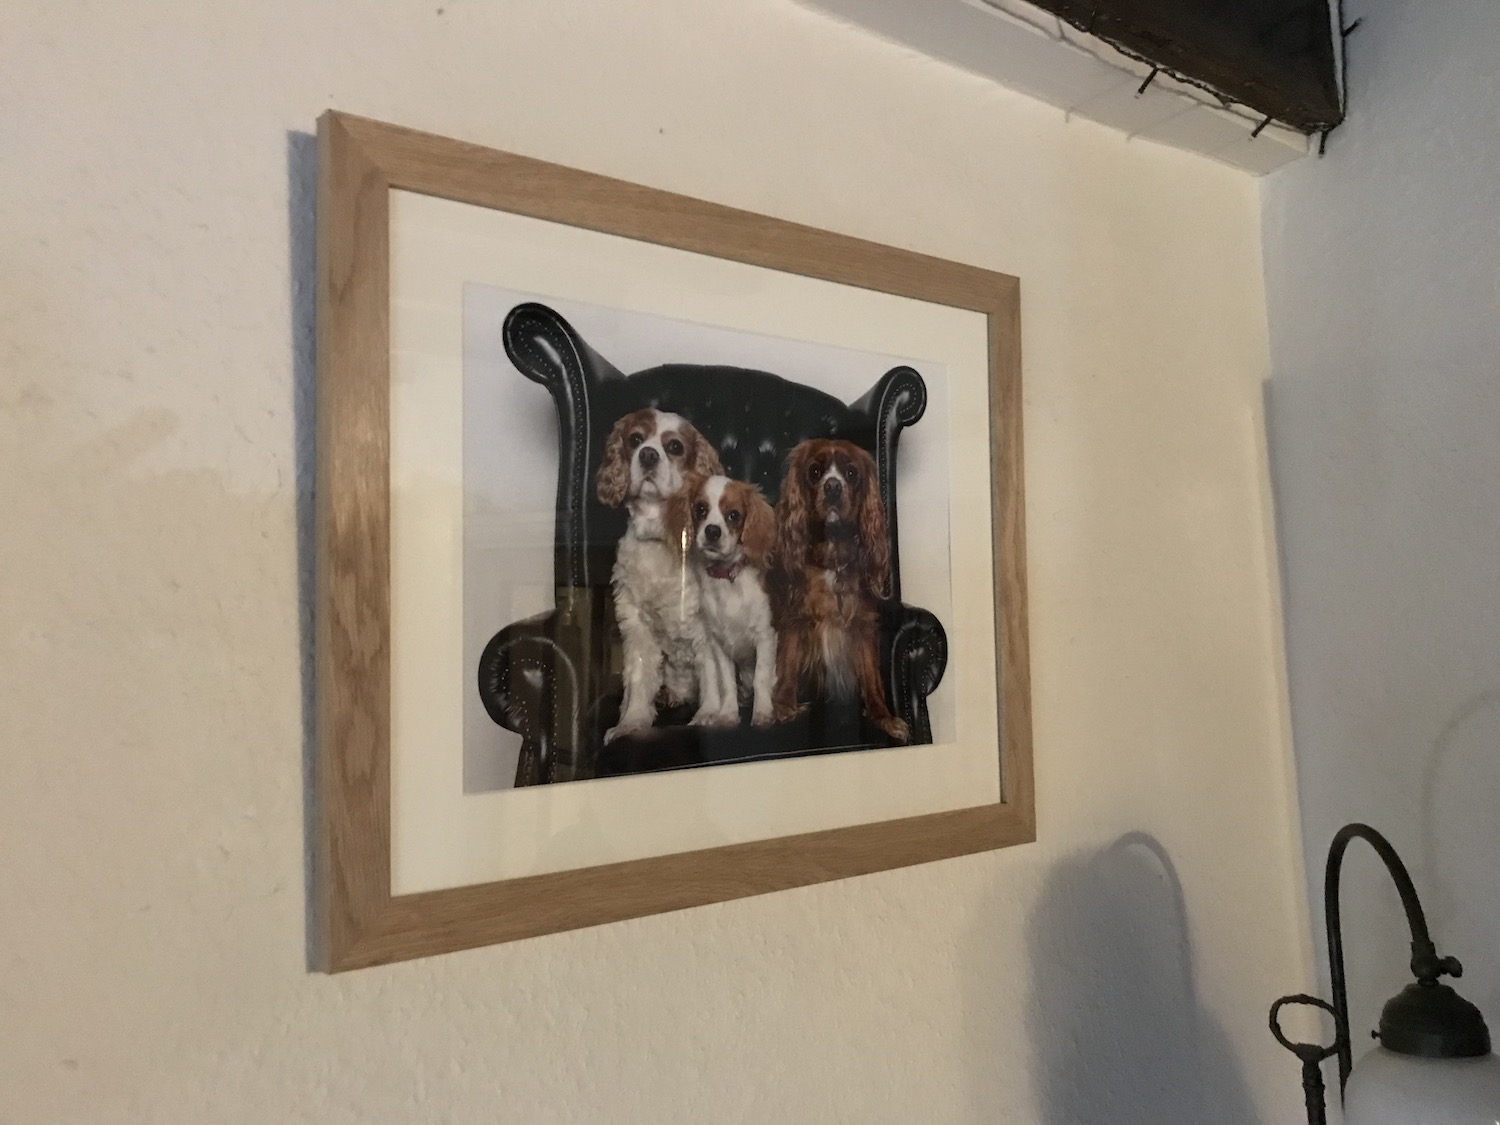 Three Cavalier King Charles Spaniels pet photography